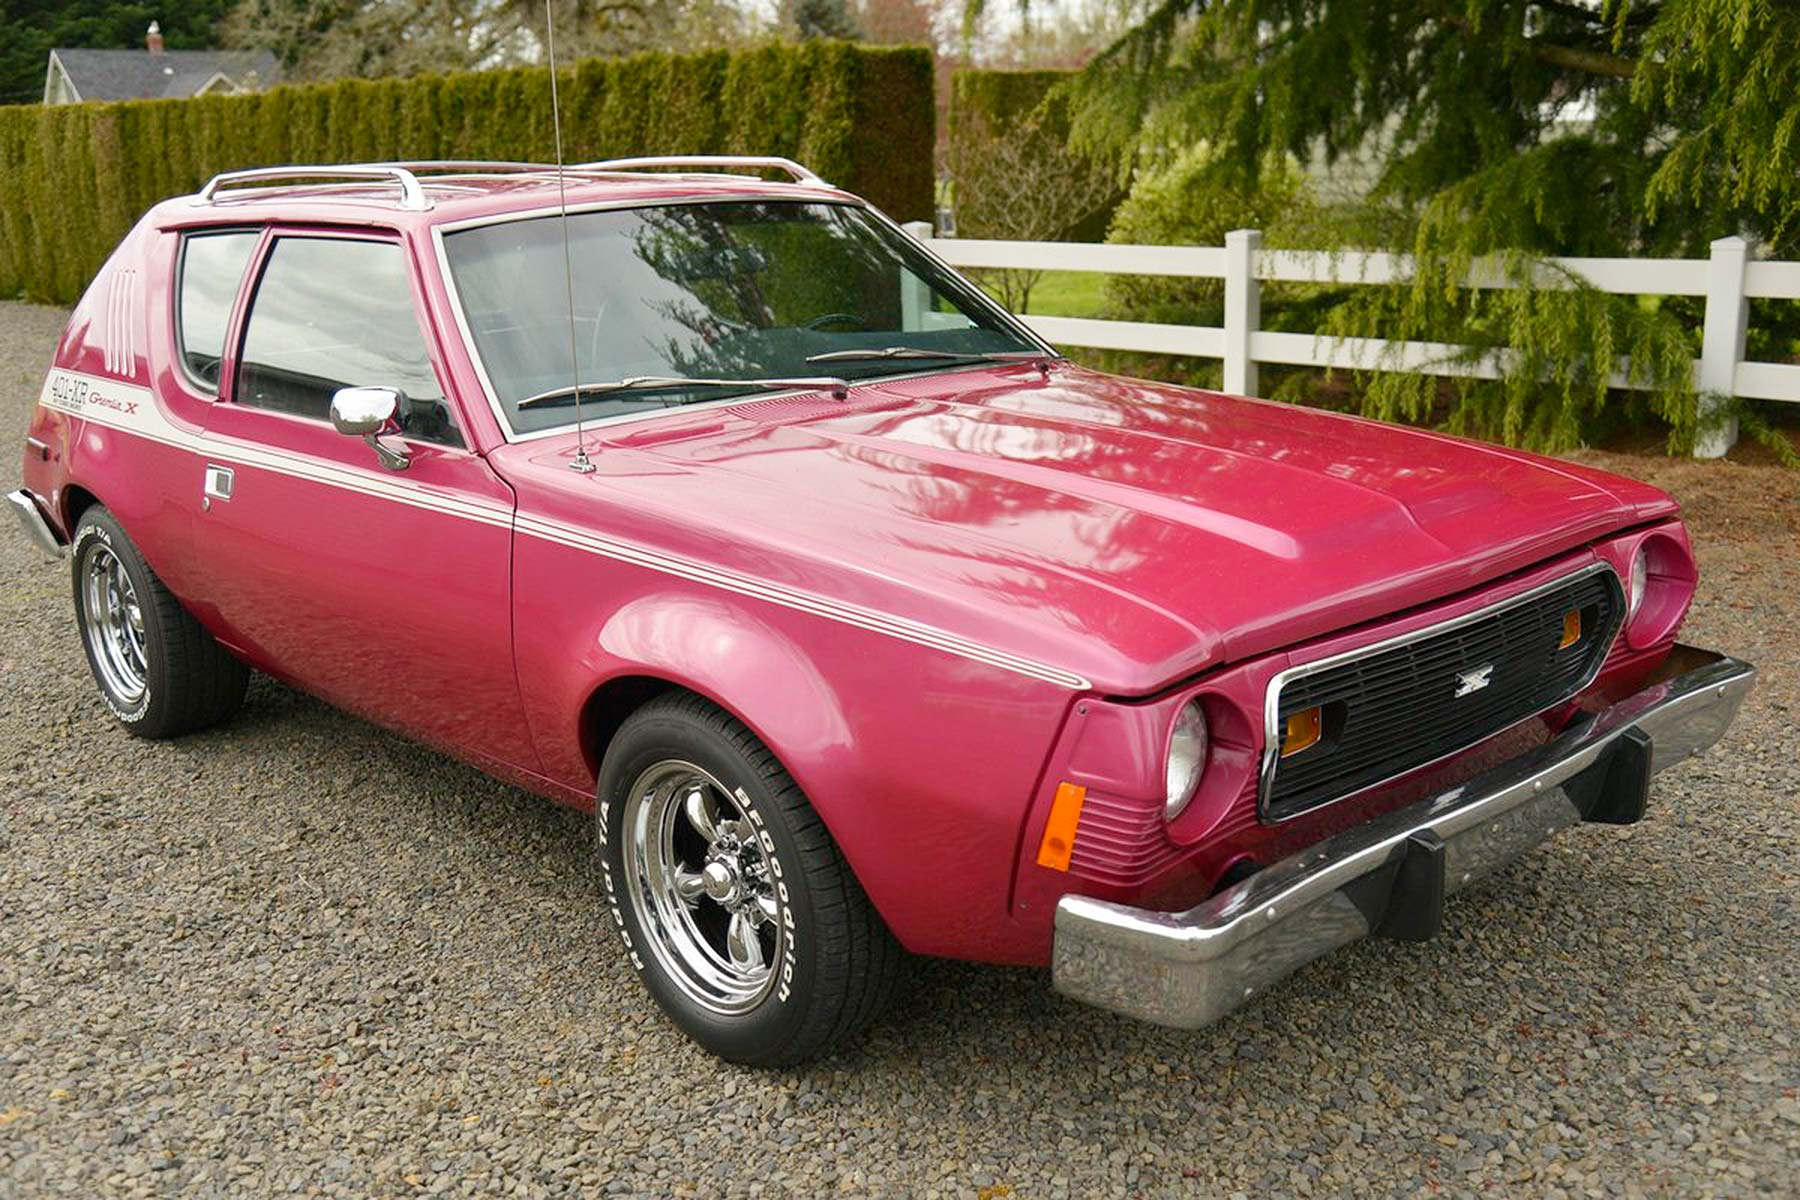 1974 AMC Gremlin 401 XR front three quarter